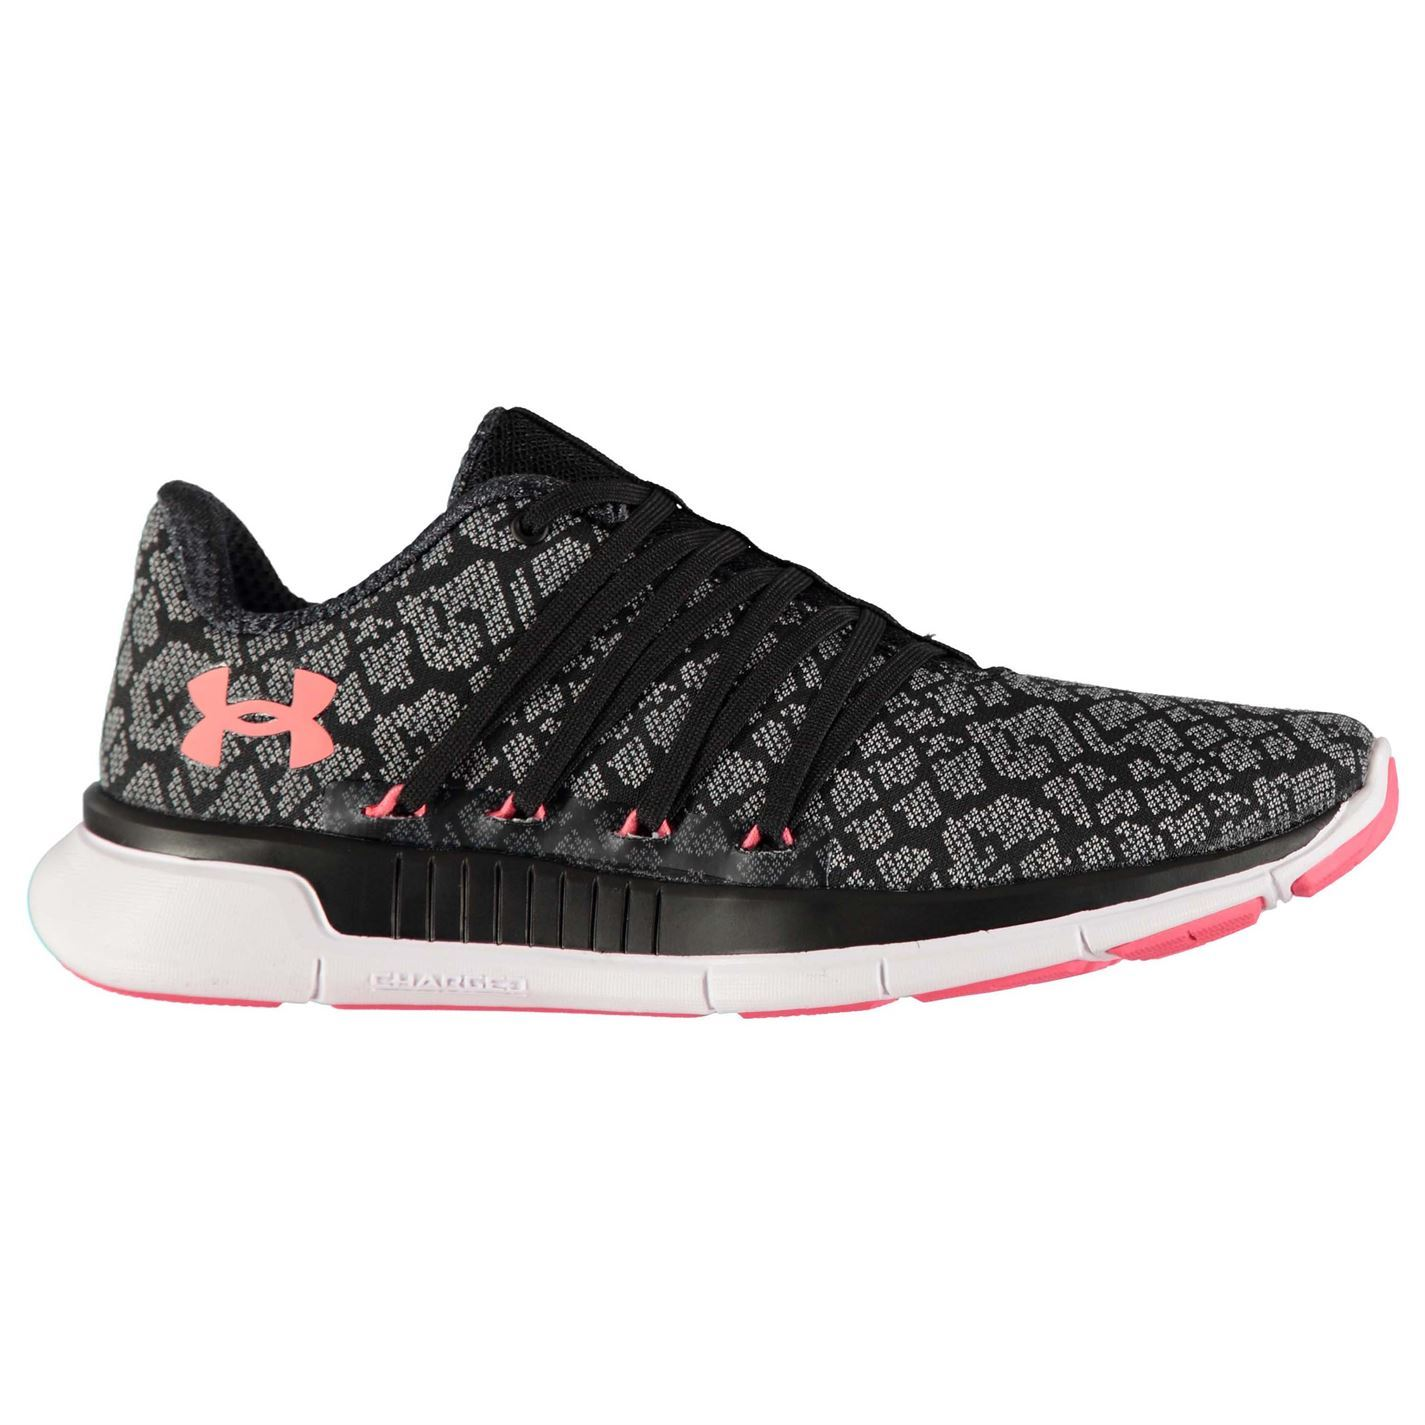 Under Armour Damenschuhe Up Charged Transit Running Schuhes Runners Lace Up Damenschuhe Padded Ankle 8bec25